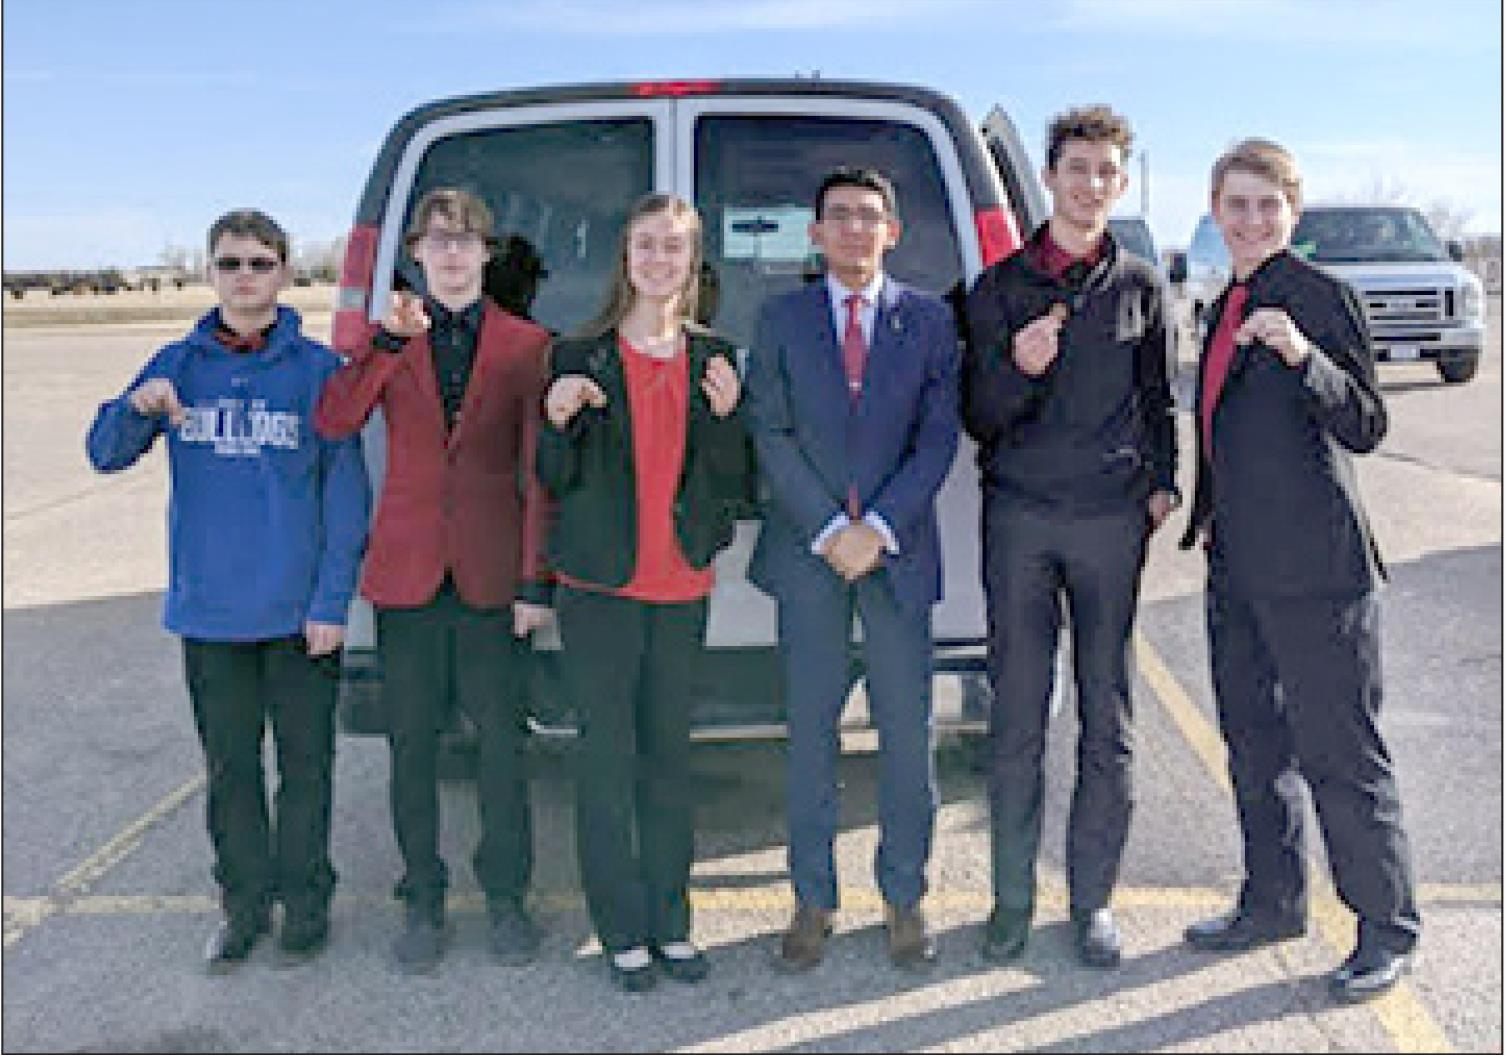 Competing at the Centura speech meet for Shelton last week were, left to right, Will Roe, Xavier Hellerich, Jaylea Pope, Jose Montanez, Angel Lehn, and Logan Hellerich. (–courtesy photo)